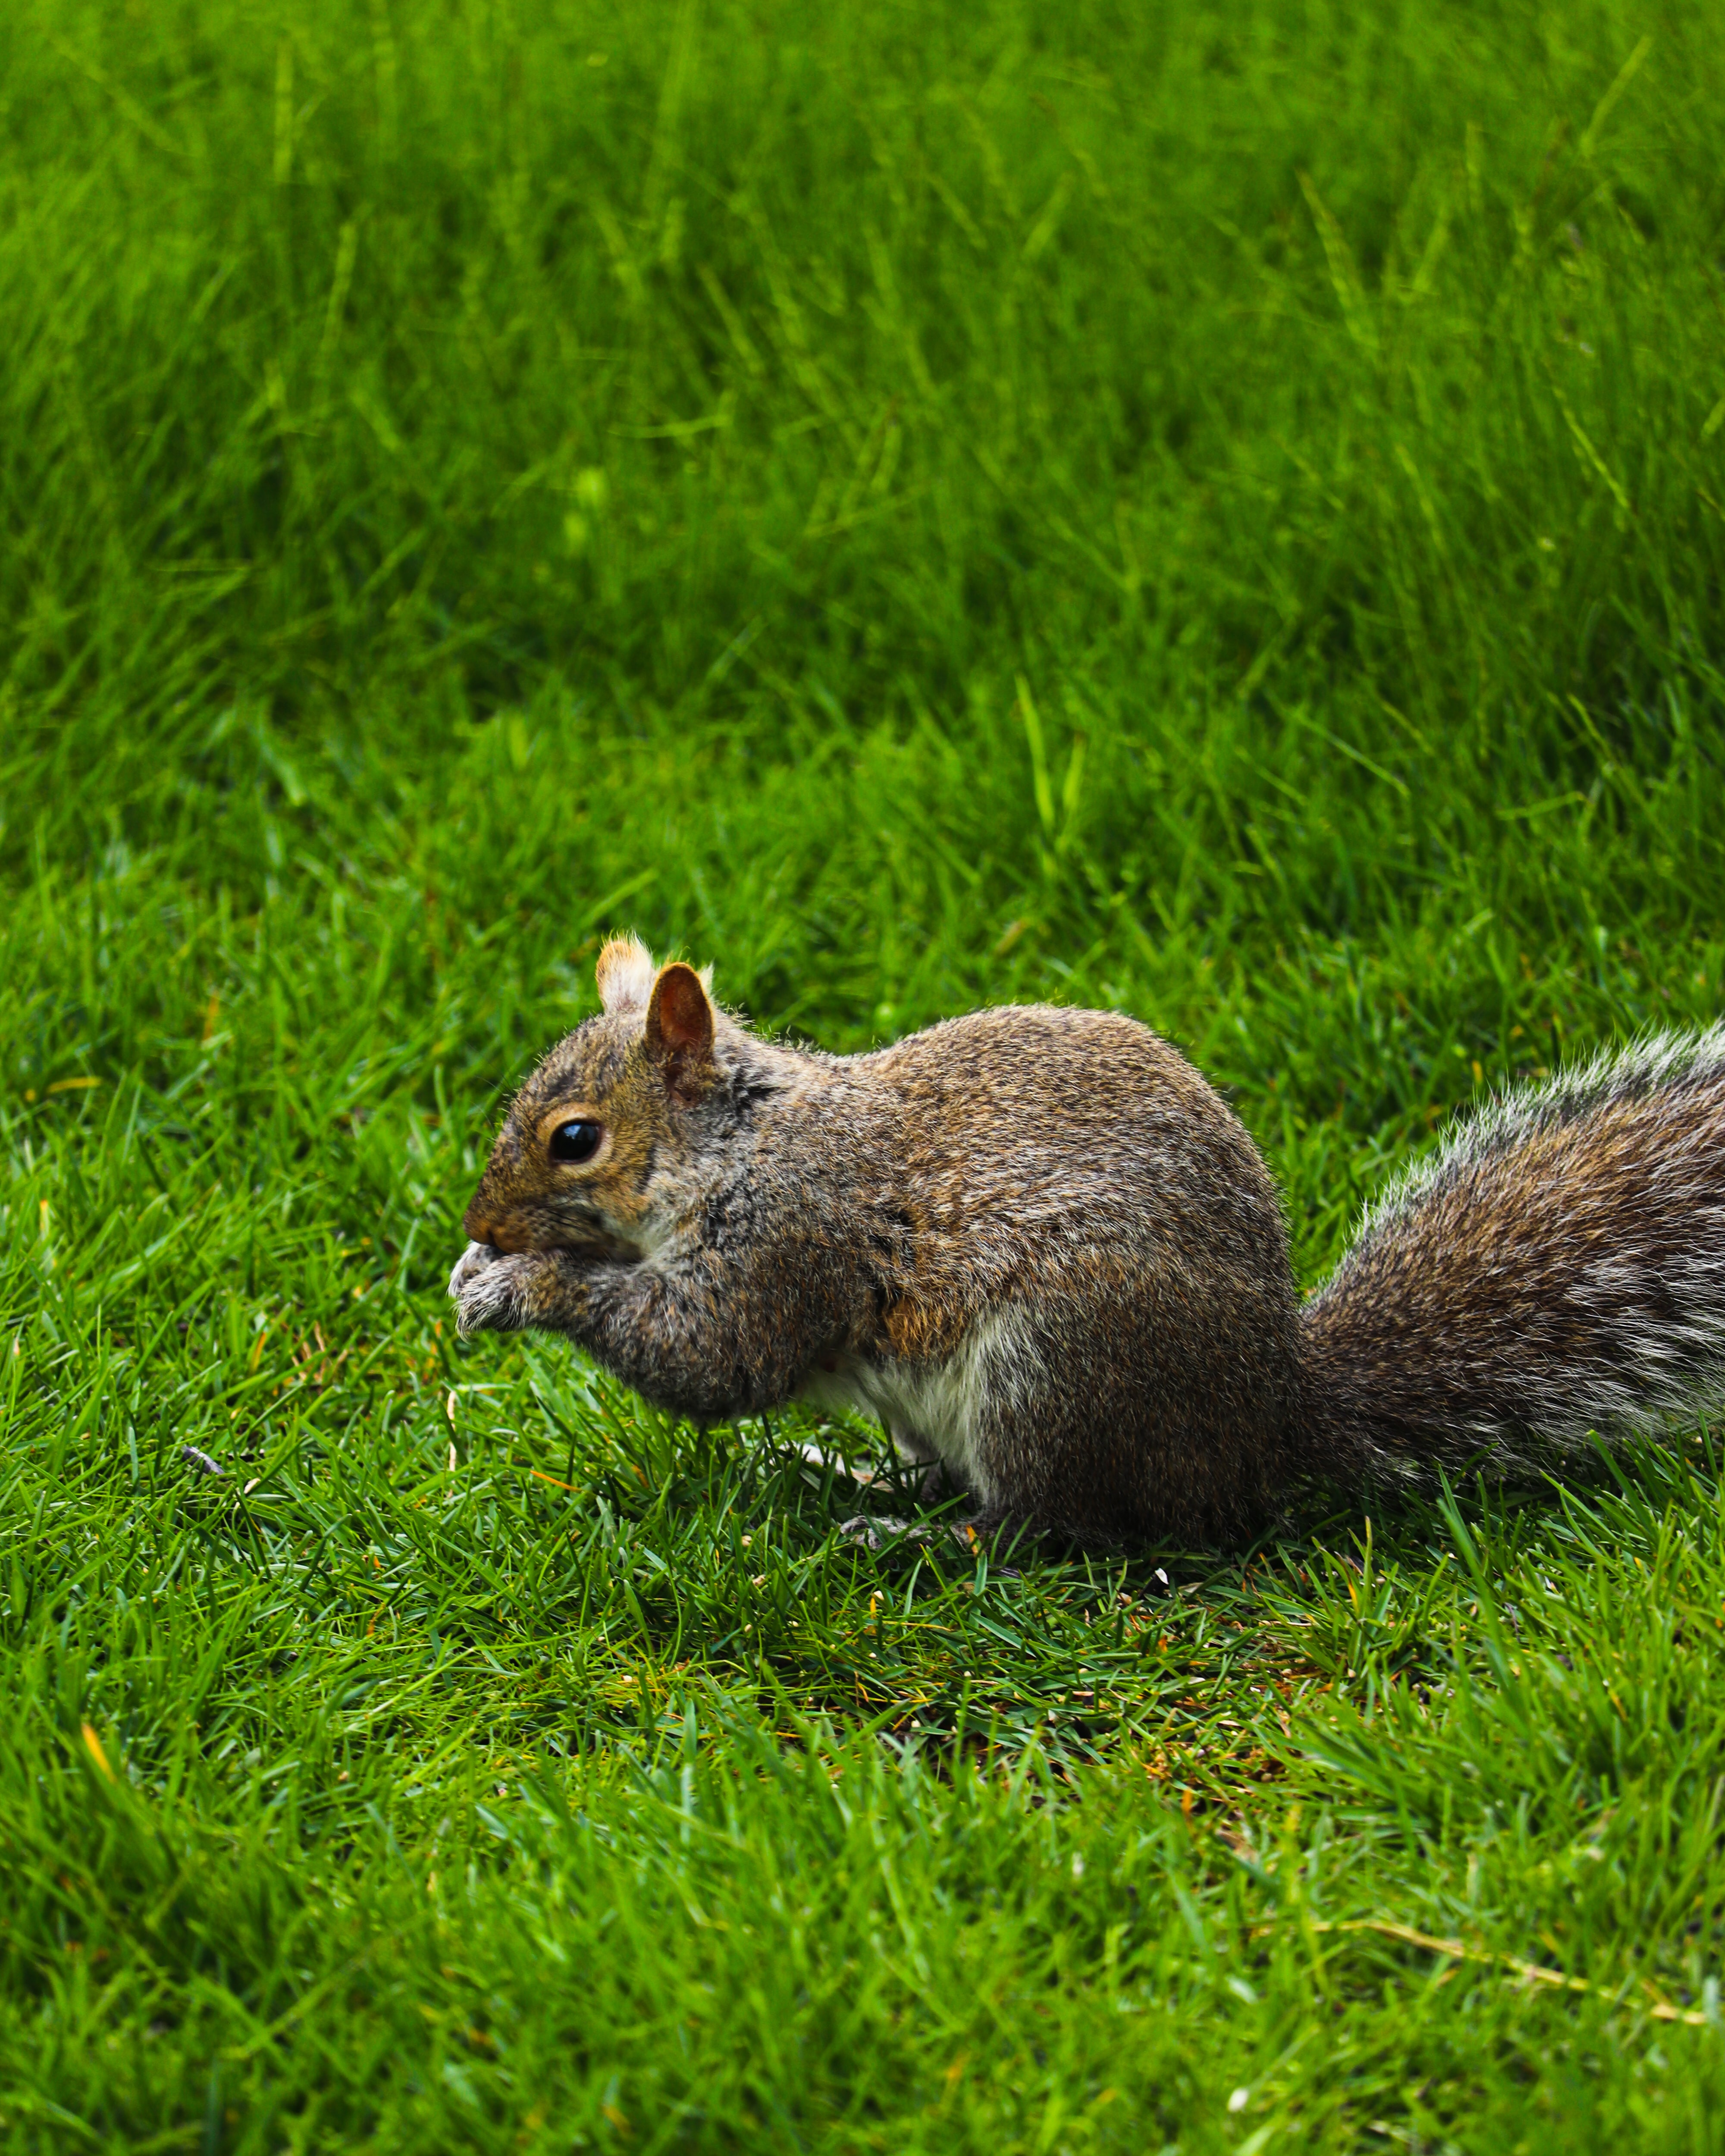 100443 download wallpaper Animals, Squirrel, Rodent, Grass, Funny screensavers and pictures for free